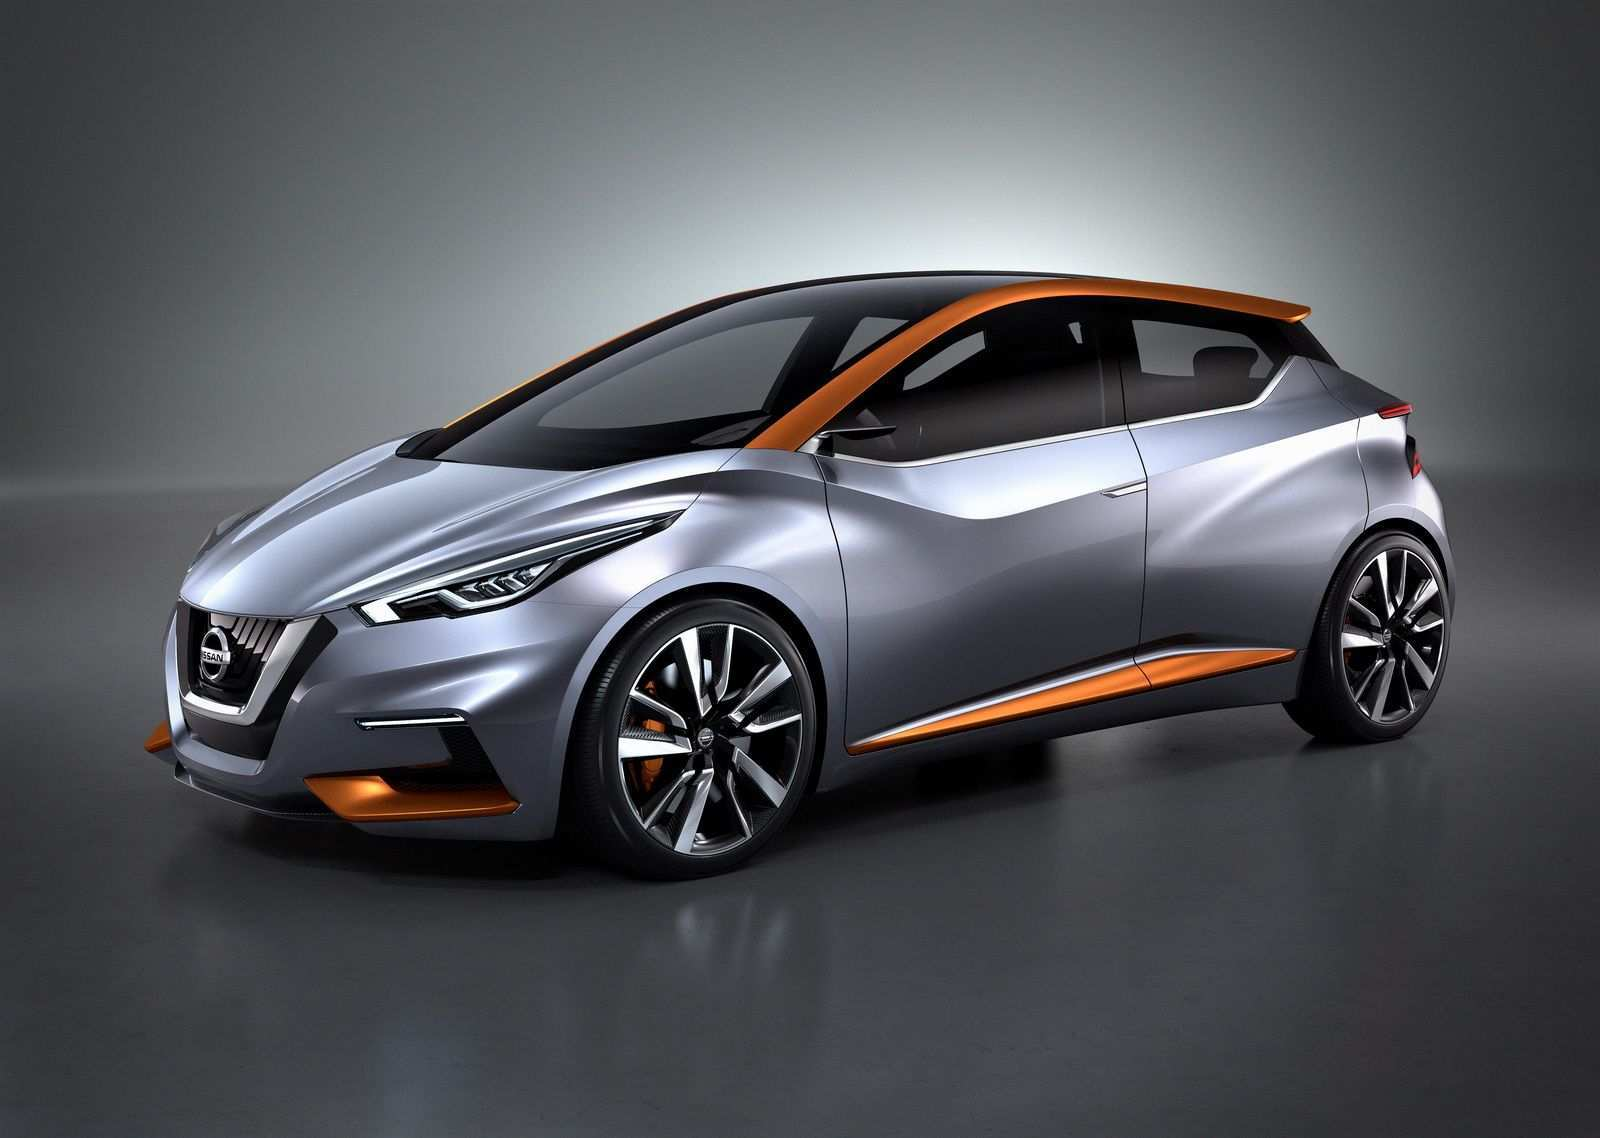 88 Gallery of Nissan 2020 Micra Price and Review by Nissan 2020 Micra